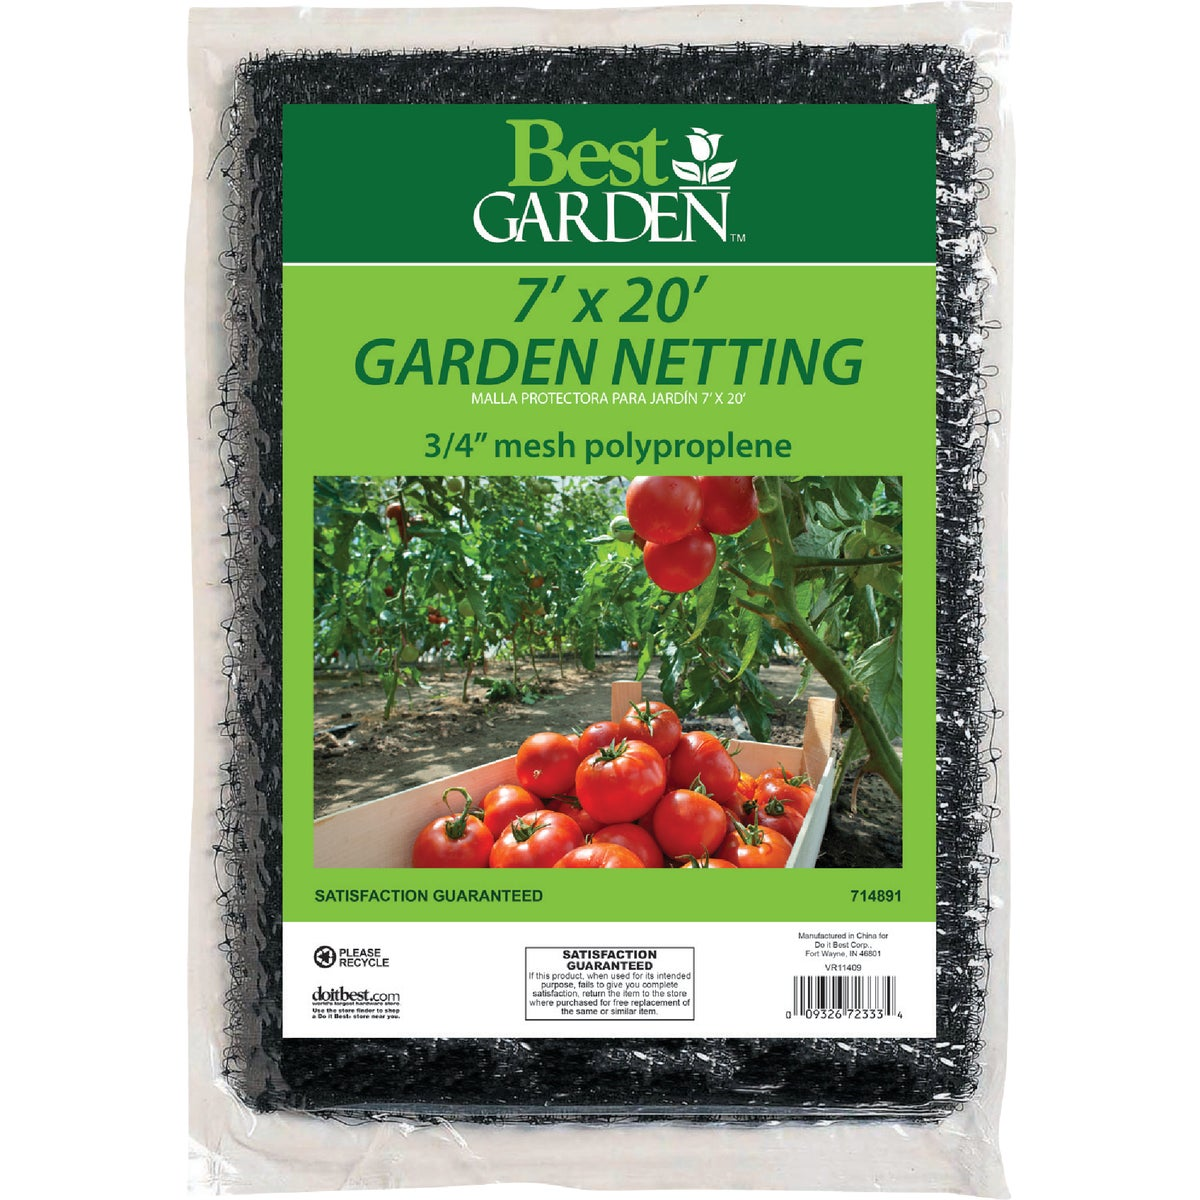 7X20 GARDEN NETTING - BN1 by Dalen Prod Inc